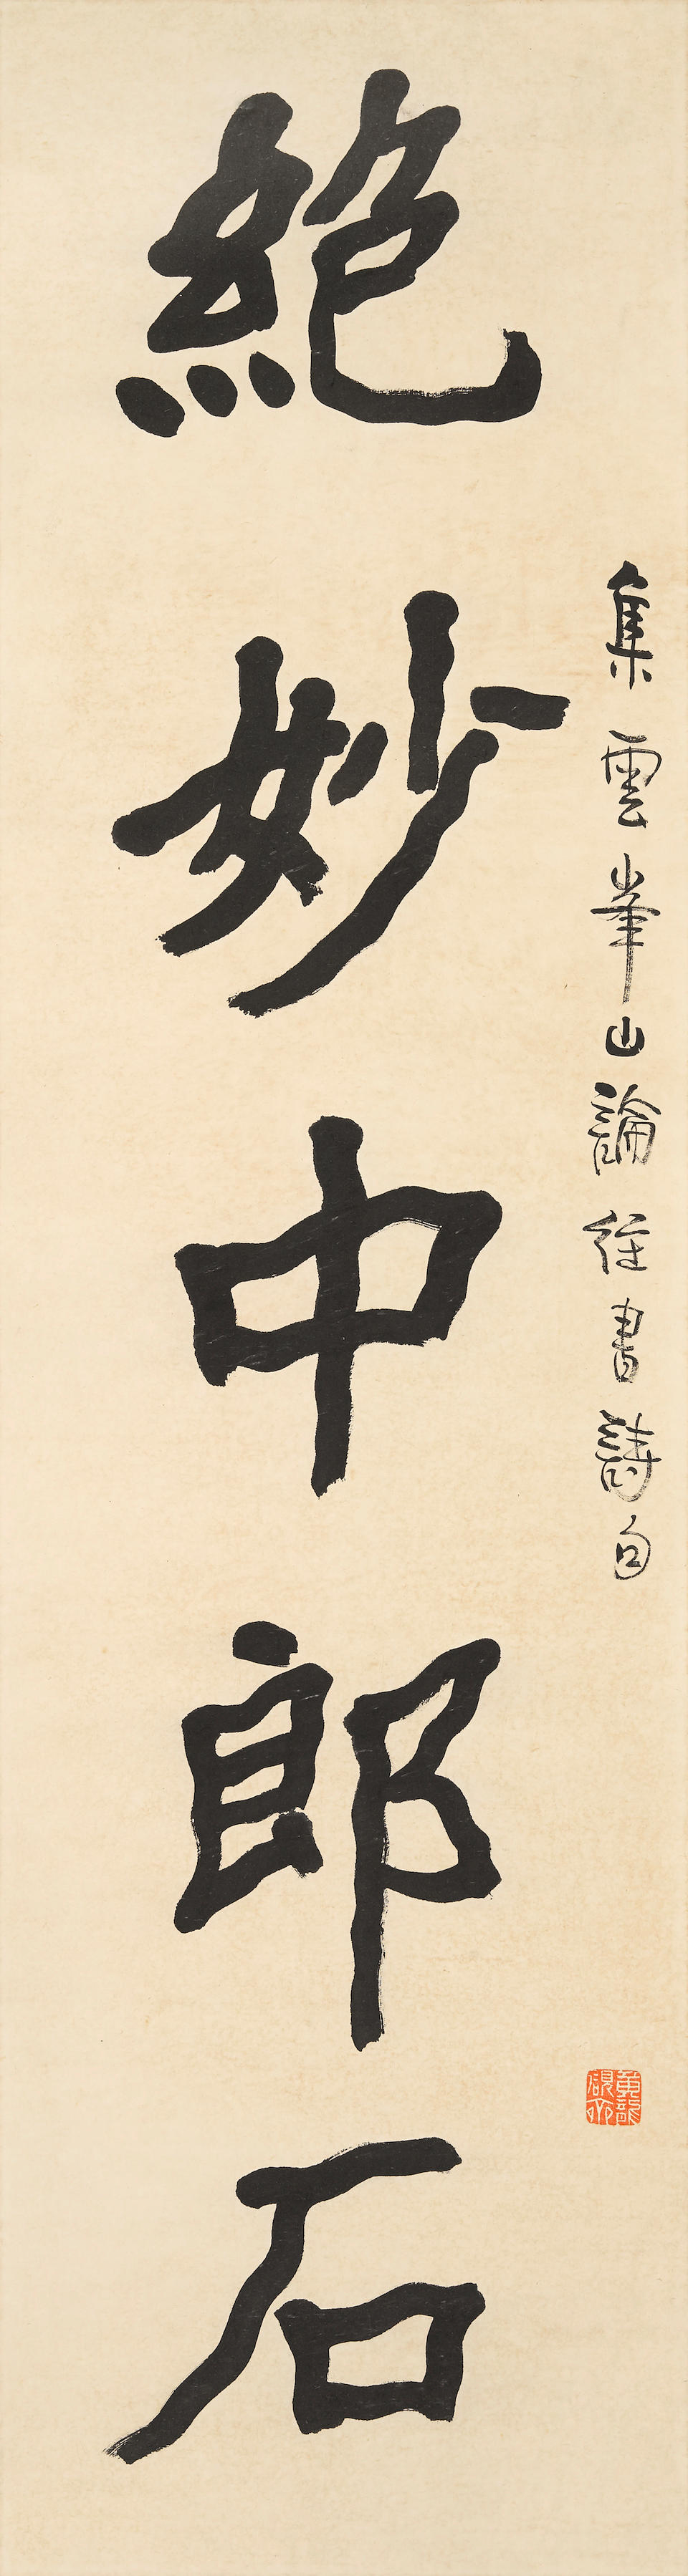 Li Ruiqing (1867-1920) Calligraphy Couplet in Clerical Script, 1919